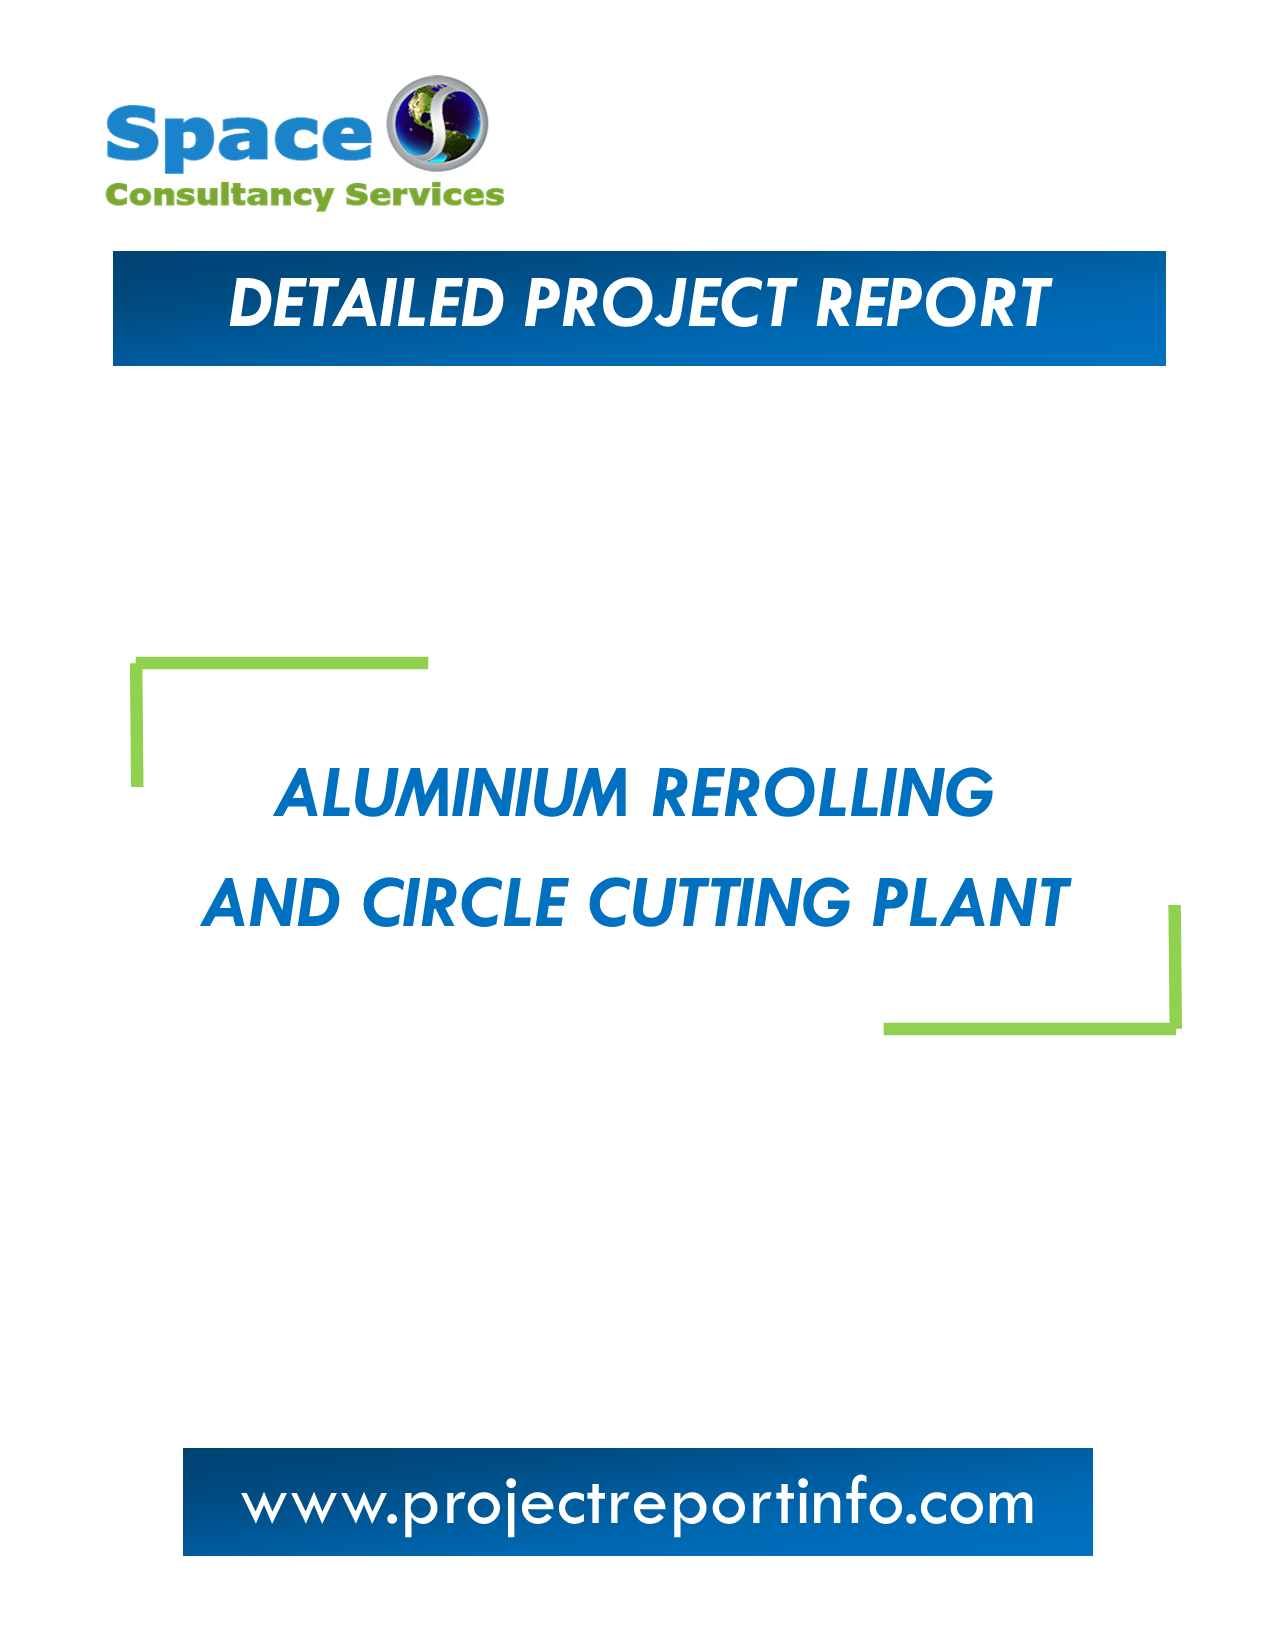 Project Report on Aluminium Rerolling and Circle Cutting Plant